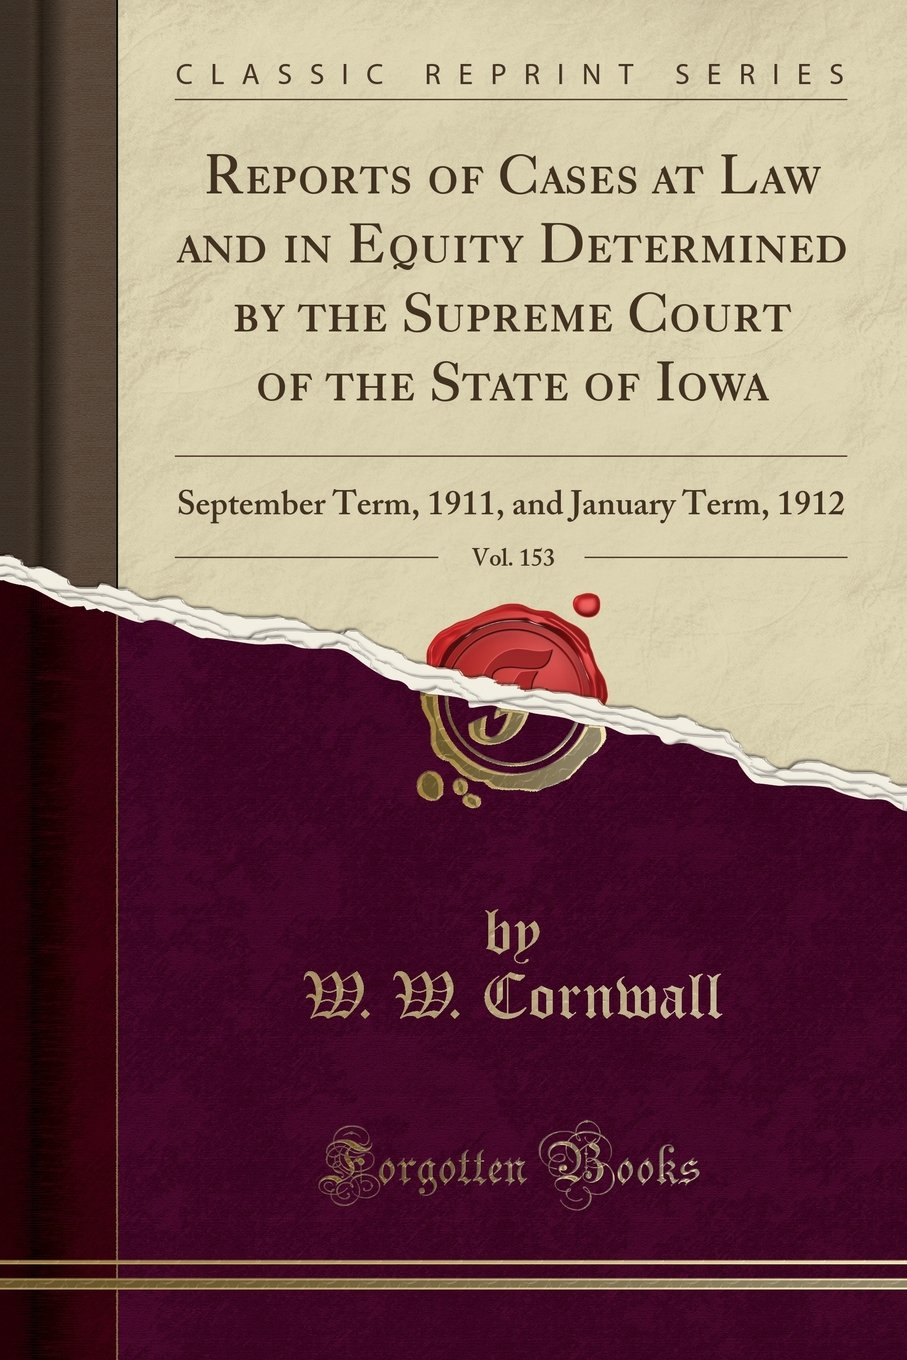 Reports of Cases at Law and in Equity Determined by the Supreme Court of the State of Iowa, Vol. 153: September Term, 1911, and January Term, 1912 (Classic Reprint) ebook